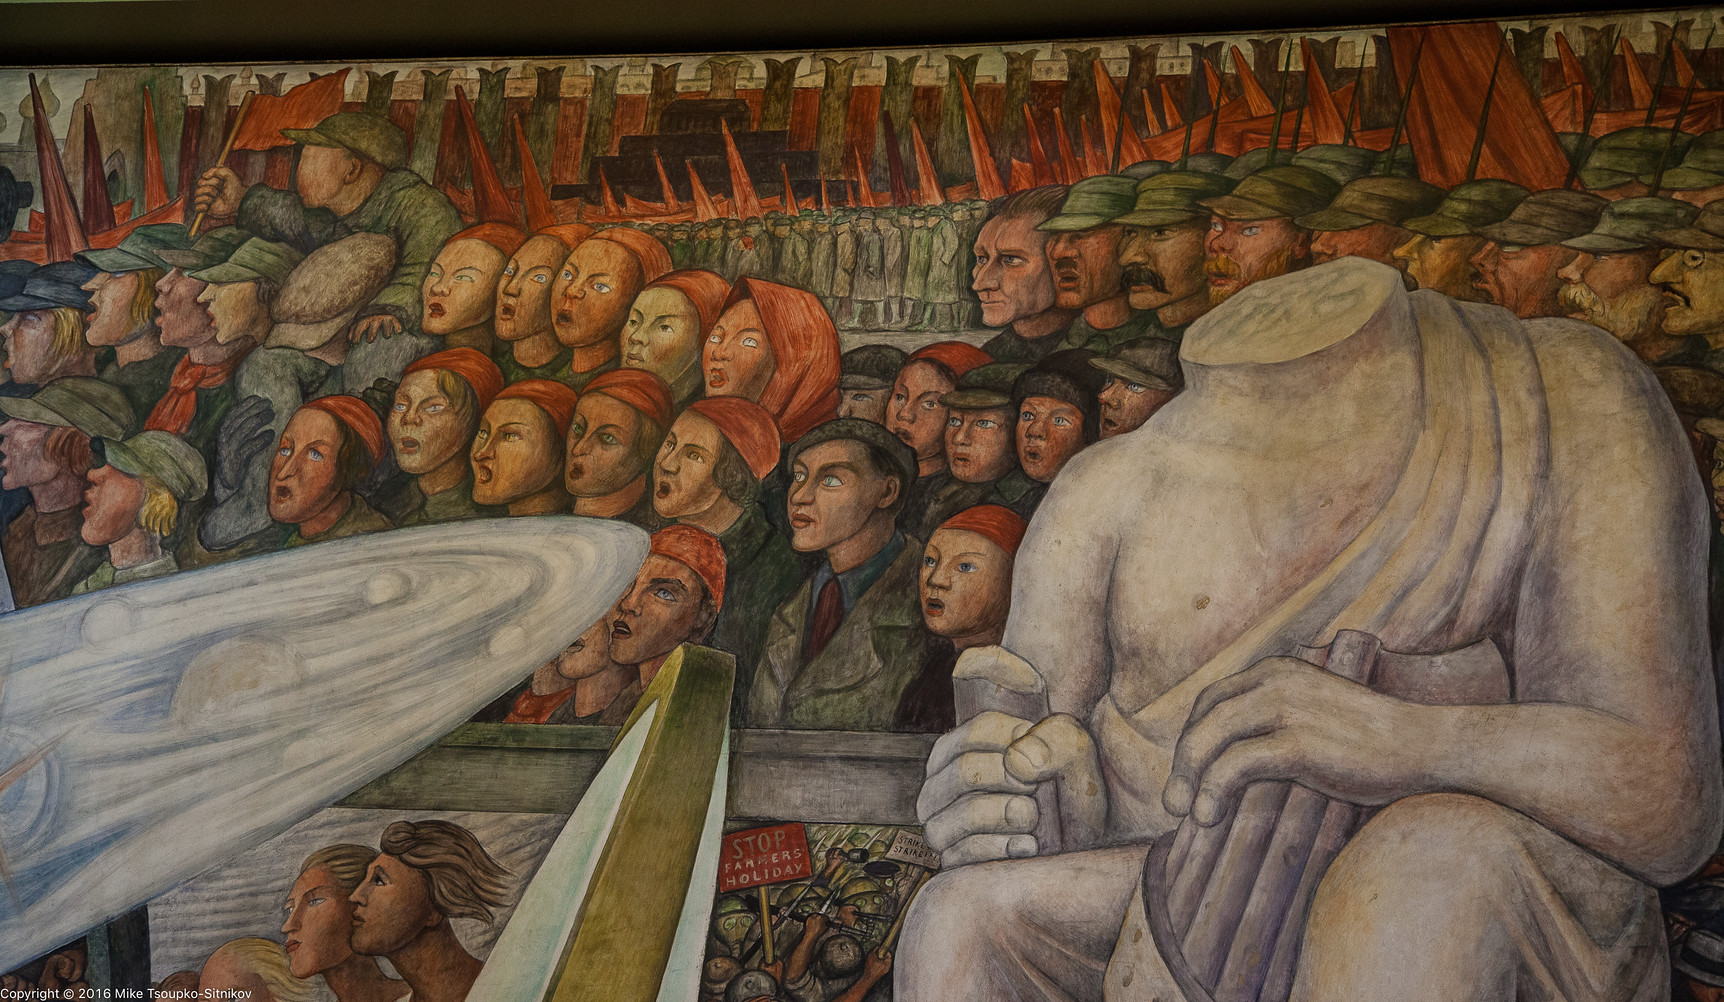 Stalinist mural diego rivera rockefeller center 28 for Diego rivera mural at rockefeller center